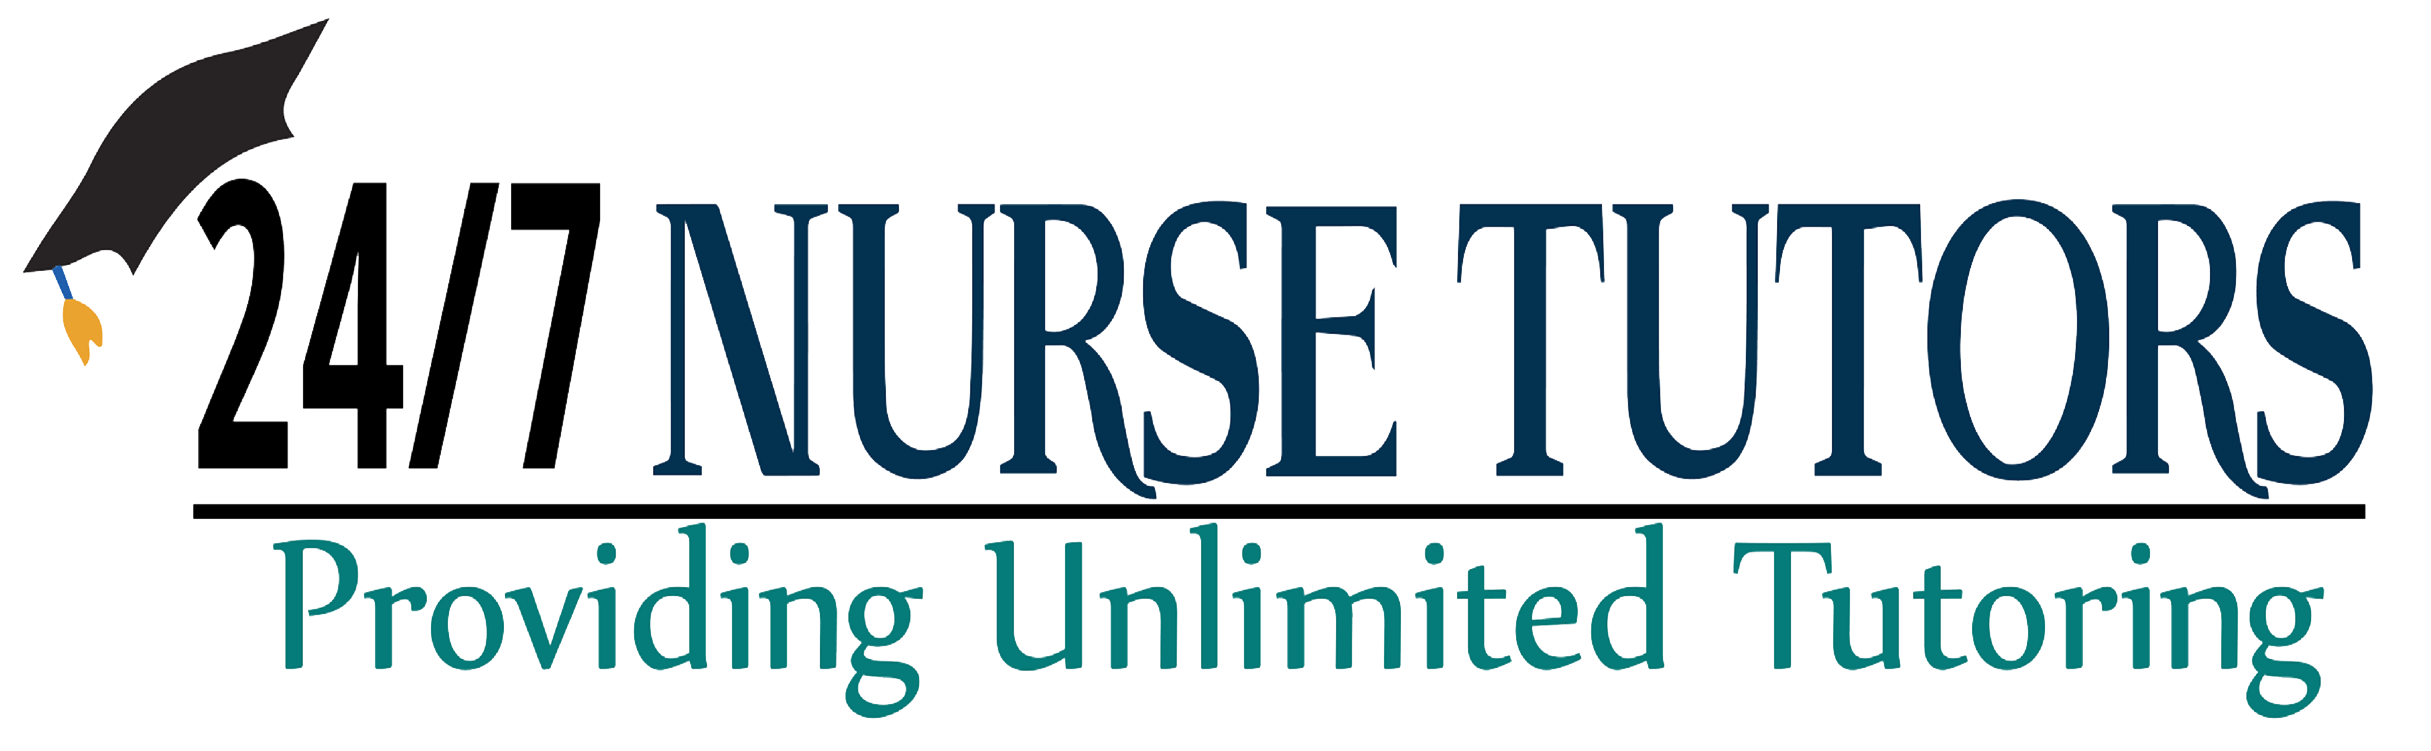 247 Nurse Tutors